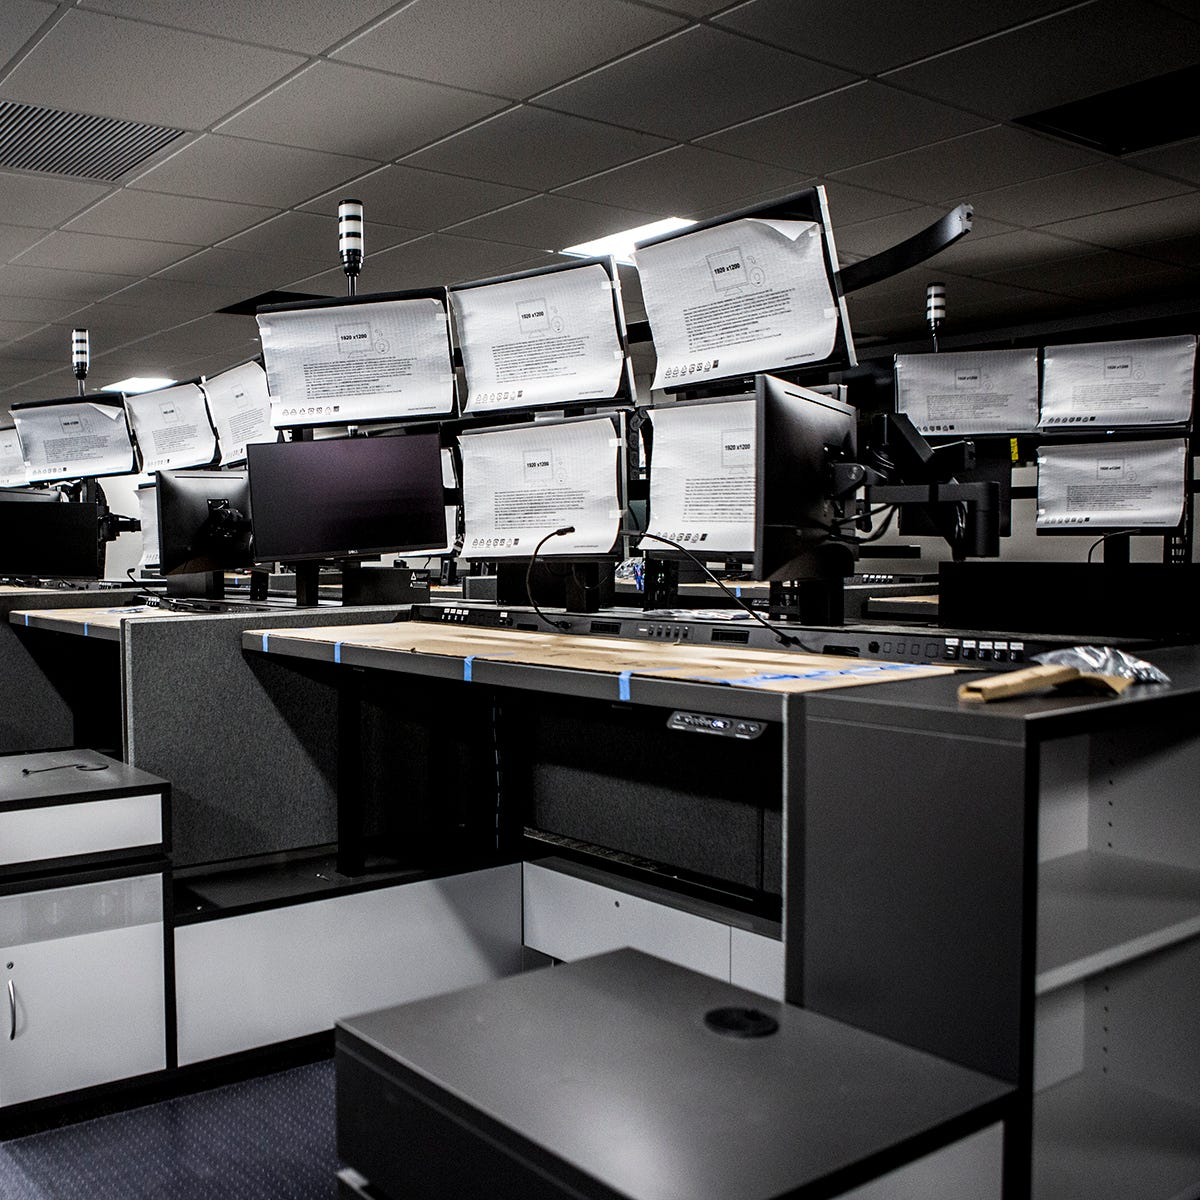 New Licking County 911 Center set to open in spring